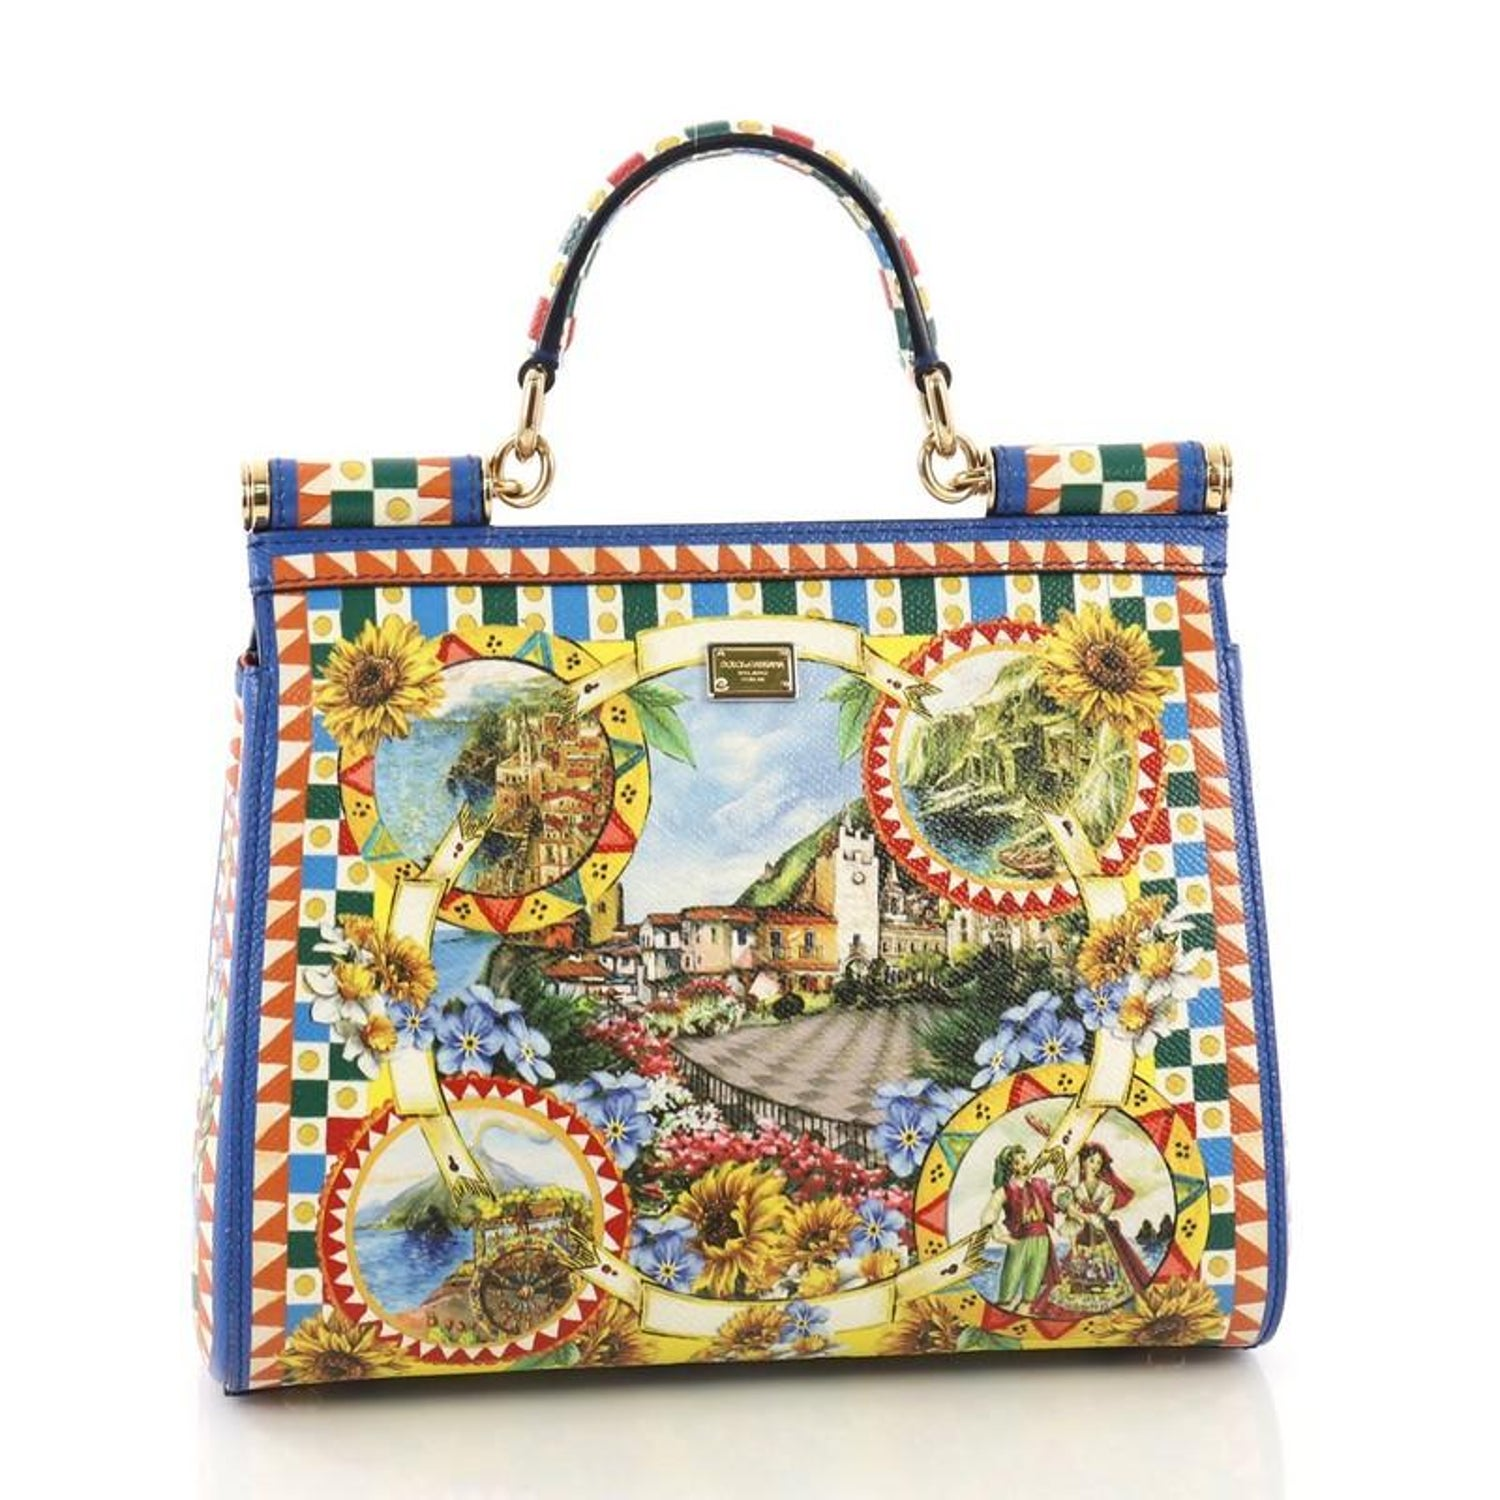 9d98d72856 Dolce and Gabbana Miss Sicily Handbag Printed Leather Medium at 1stdibs